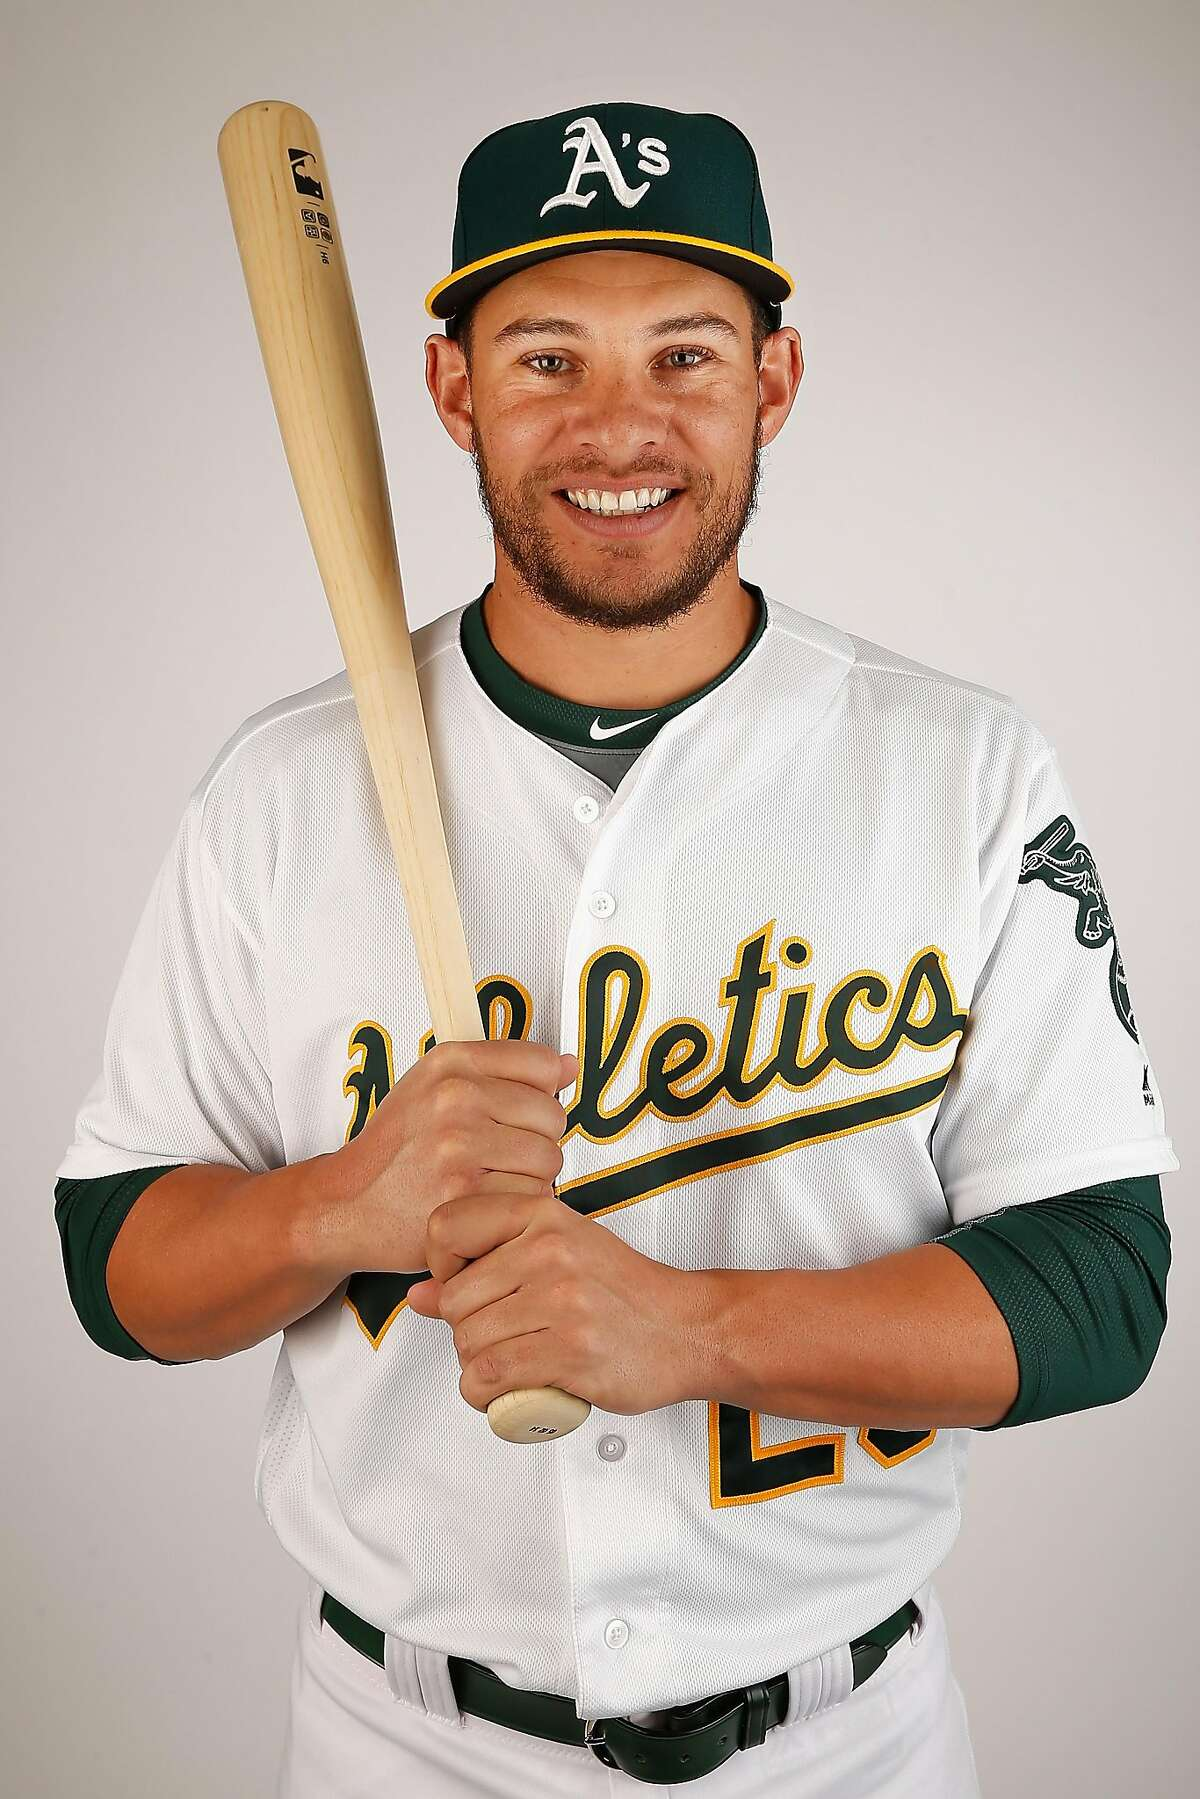 MESA, AZ - FEBRUARY 29: Danny Valencia #26 of the Oakland Athletics poses for a portrait during the spring training photo day at HoHoKam Stadium on February 29, 2016 in Mesa, Arizona. (Photo by Christian Petersen/Getty Images)